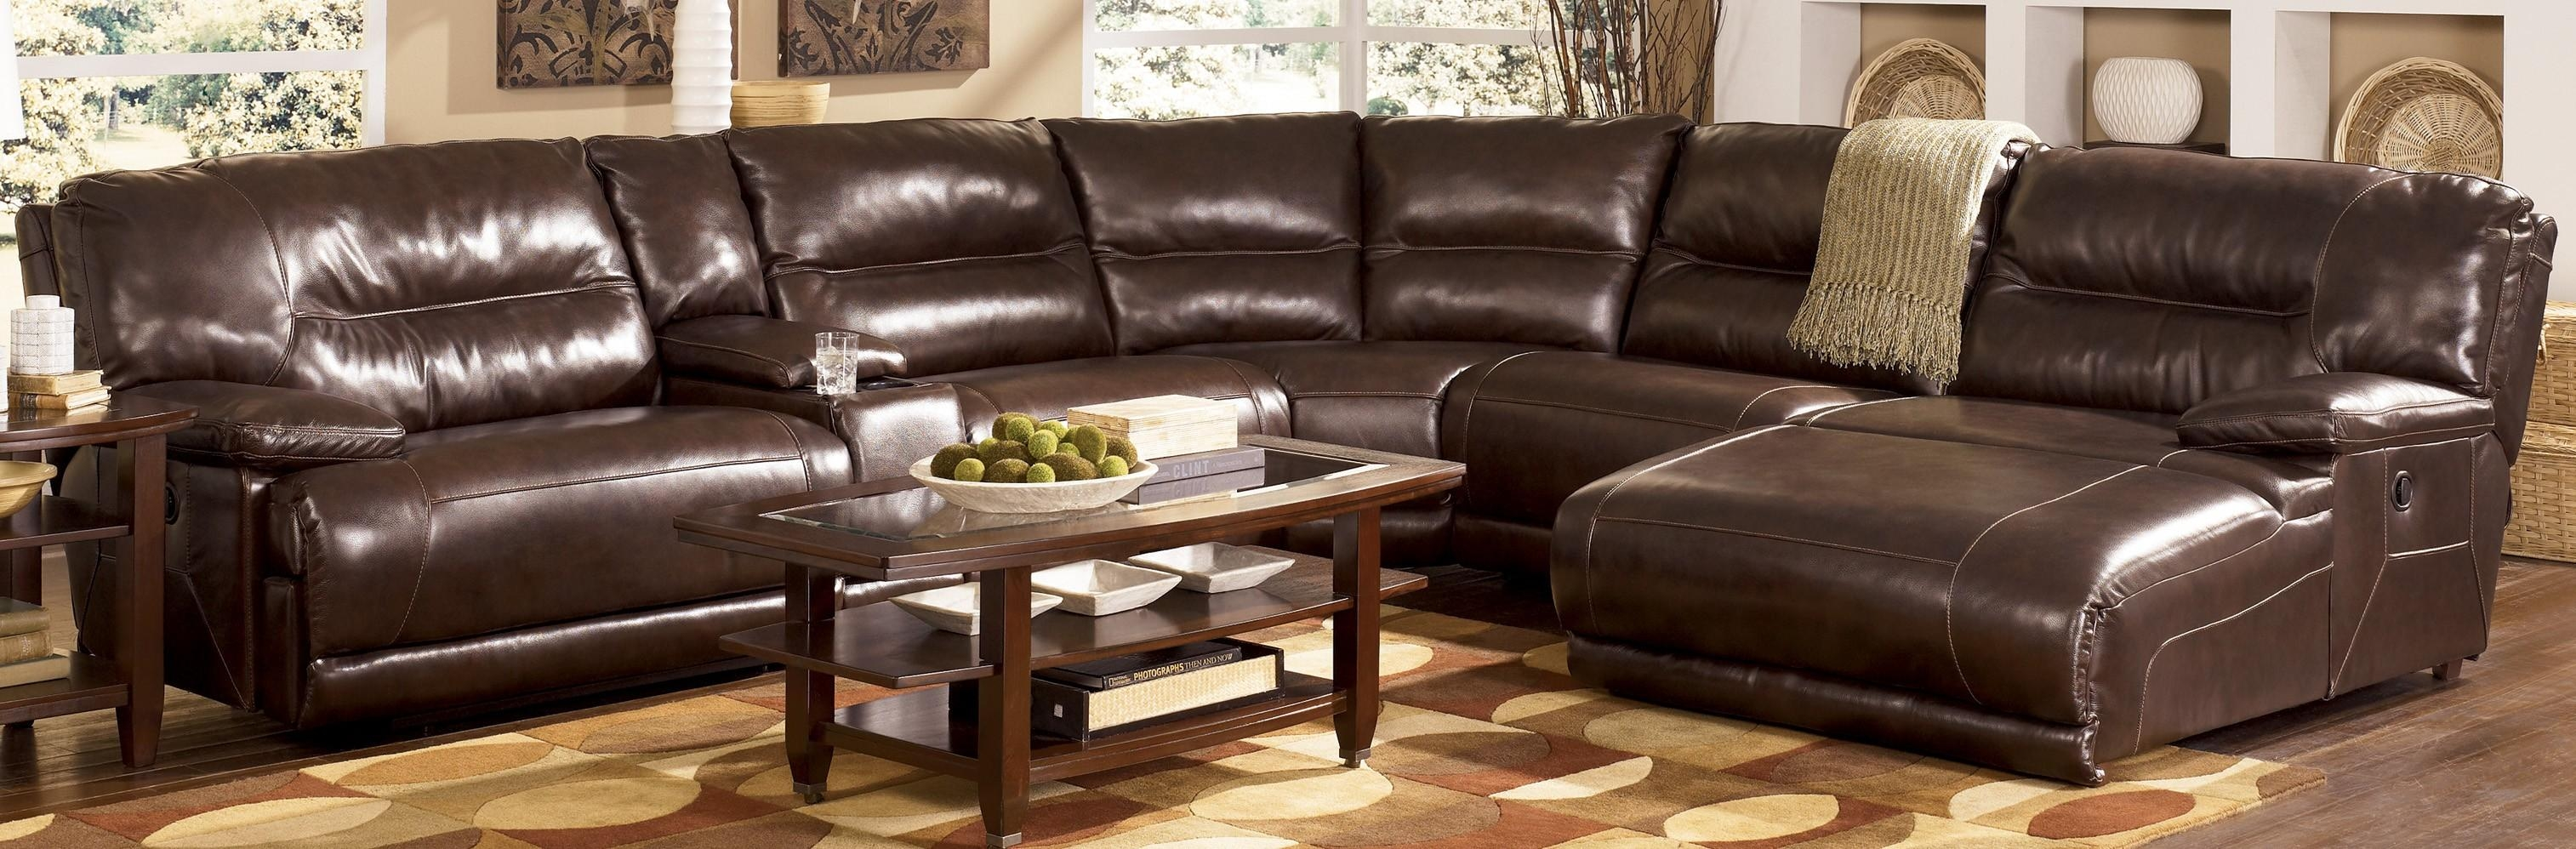 Stunning 6 Piece Leather Sectional Sofa 68 For Your Sectional In Leather Sectional Sofas Toronto (Photo 2 of 20)